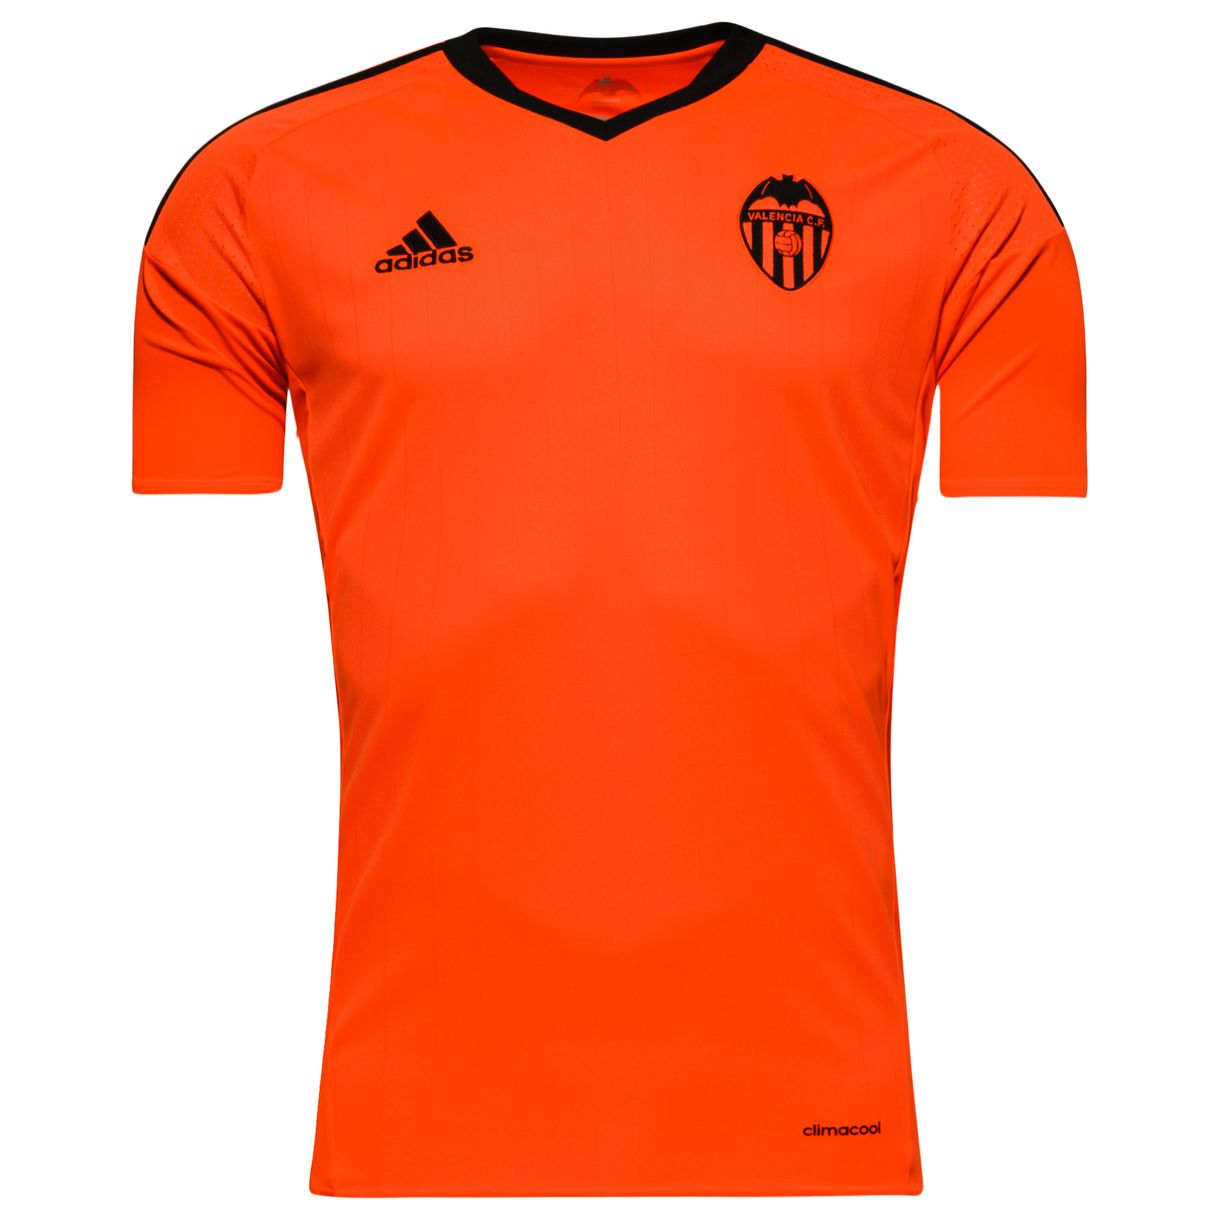 20162017 Valencia Adidas Third Football Shirt